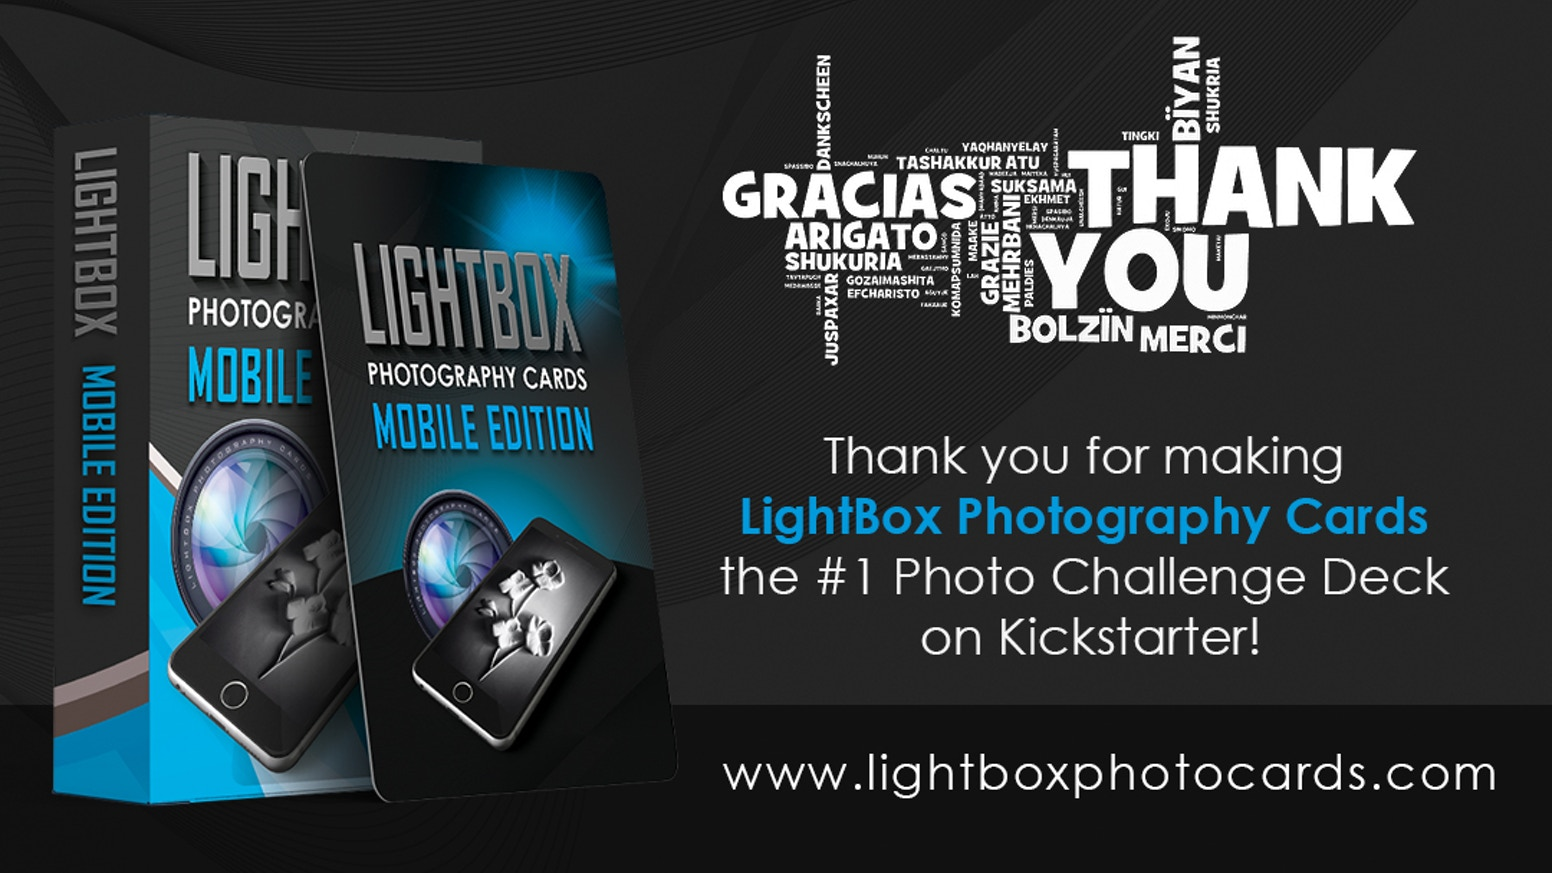 LightBox Photography Cards: Mobile Edition! by Paul ...